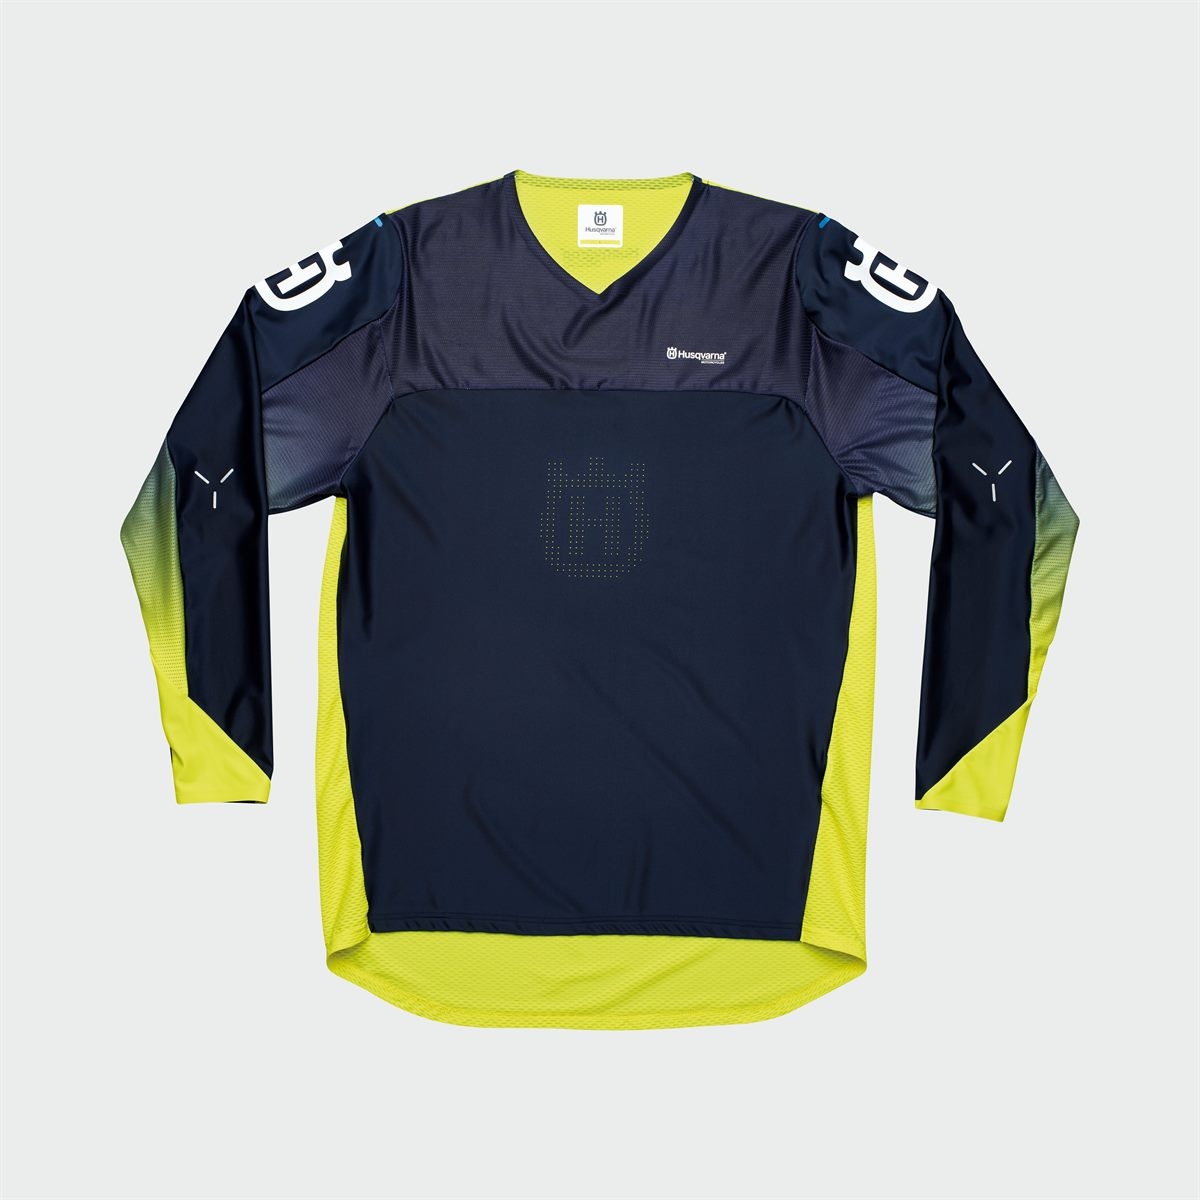 Husqvarna Motorcycles 2020 Functional Clothing Offroad Collection - RAILED SHIRT YELLOW